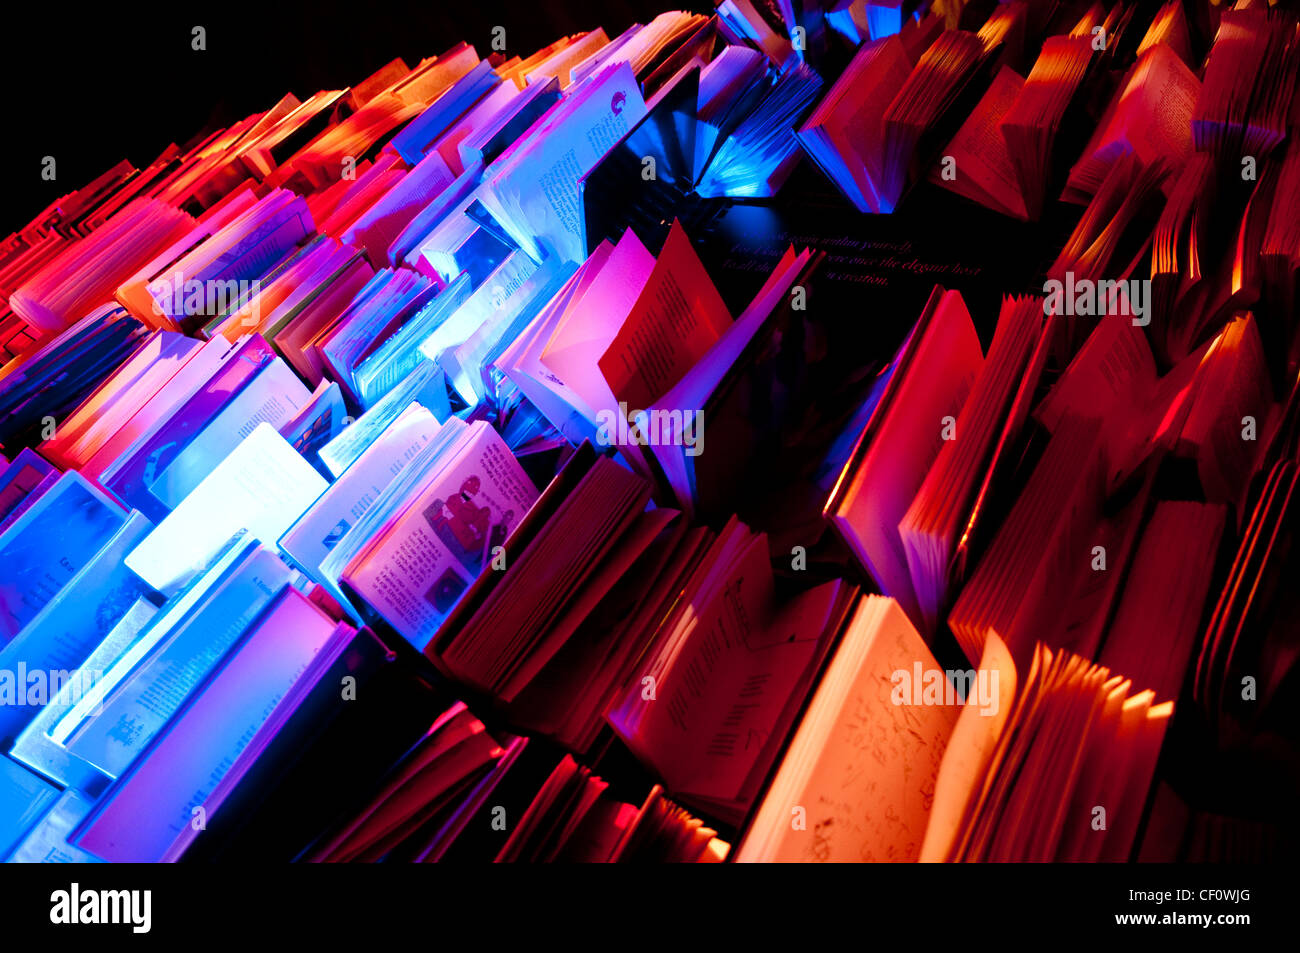 Book shelf artistic display with different colours - Stock Image